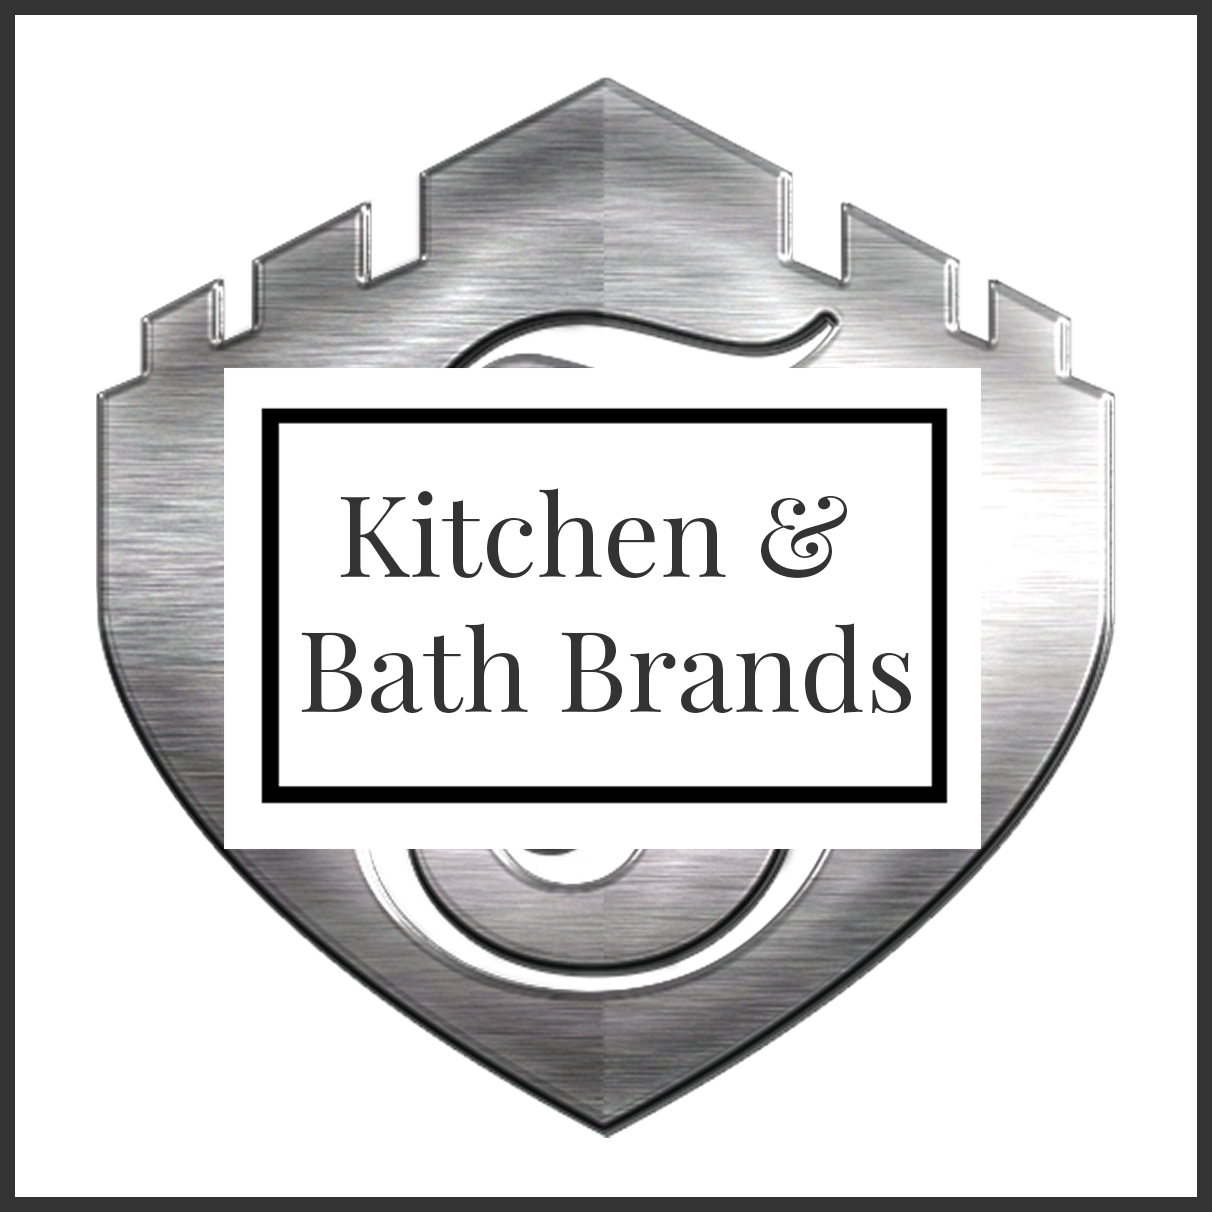 Kitchen & Bath Brands